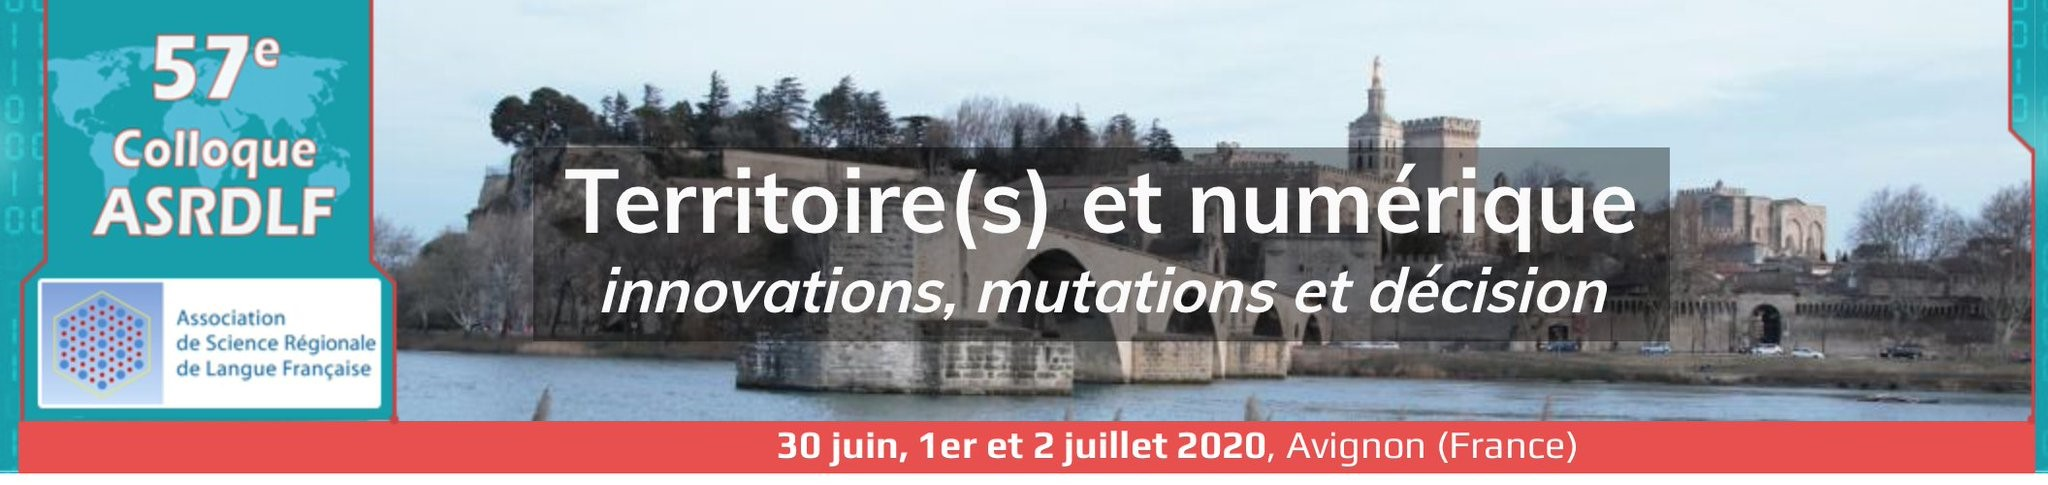 French Speaking Section 57th ASRDLF Colloquium